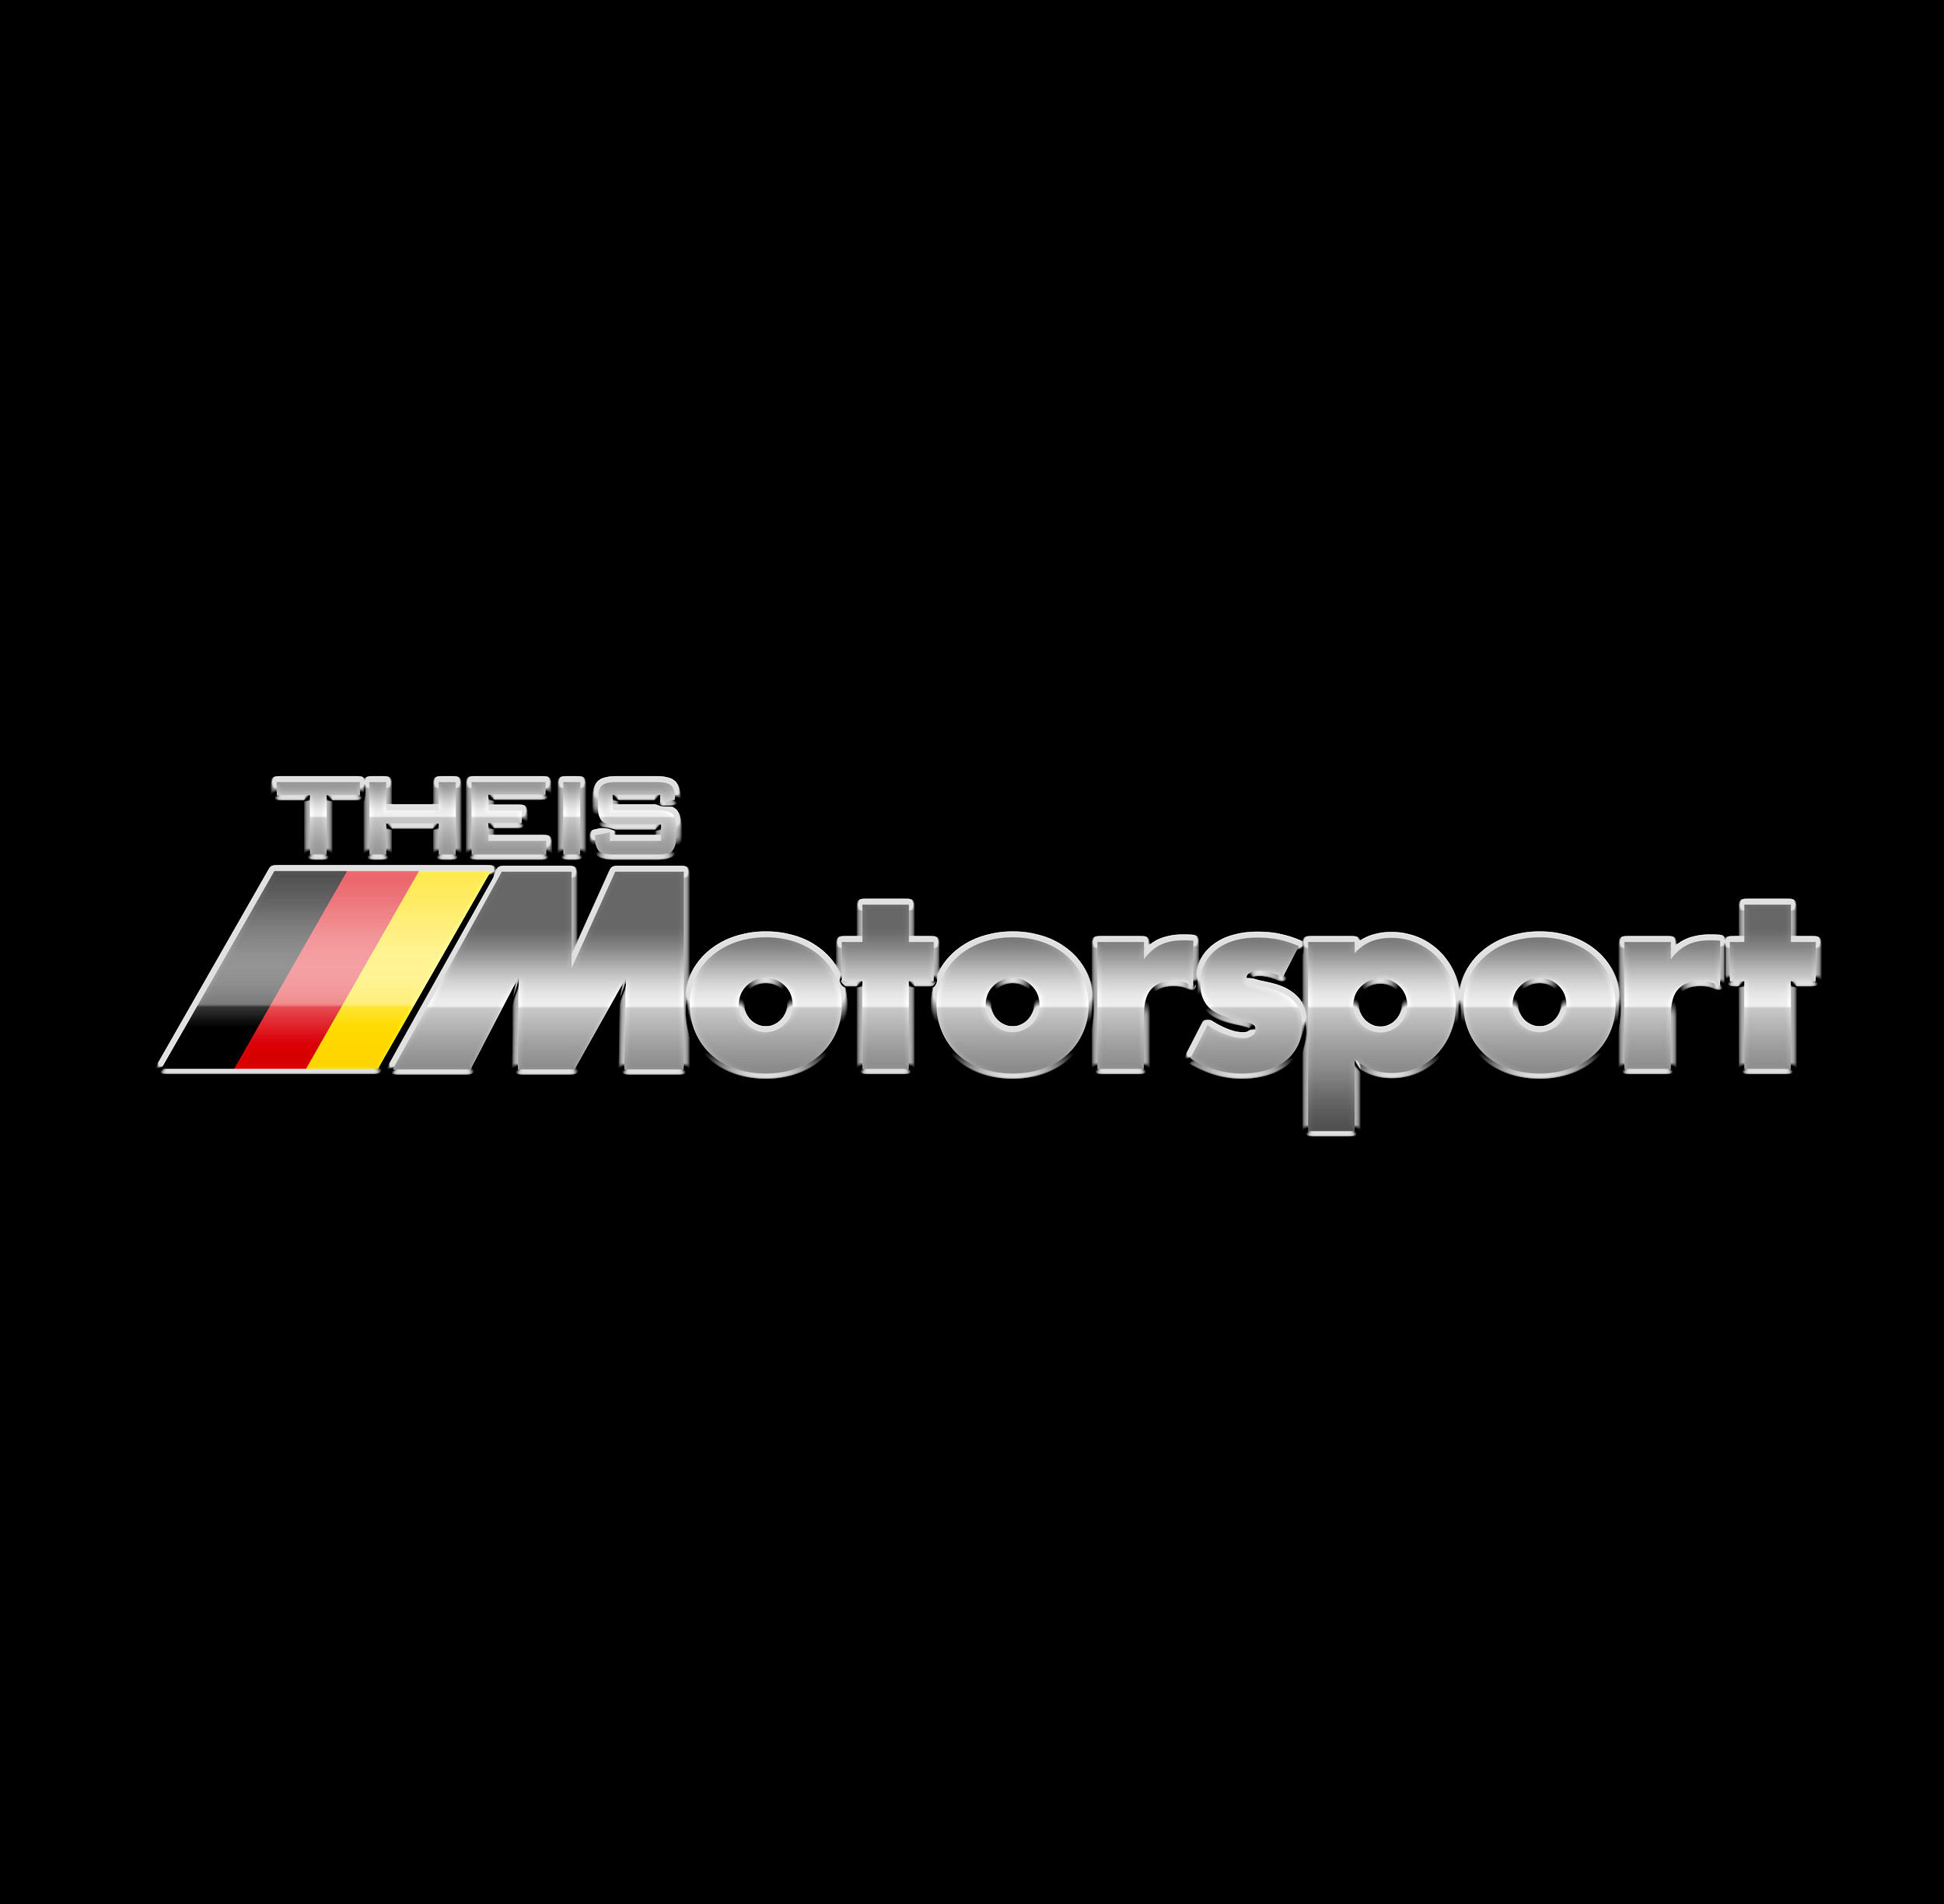 Theis Motorsport Logo